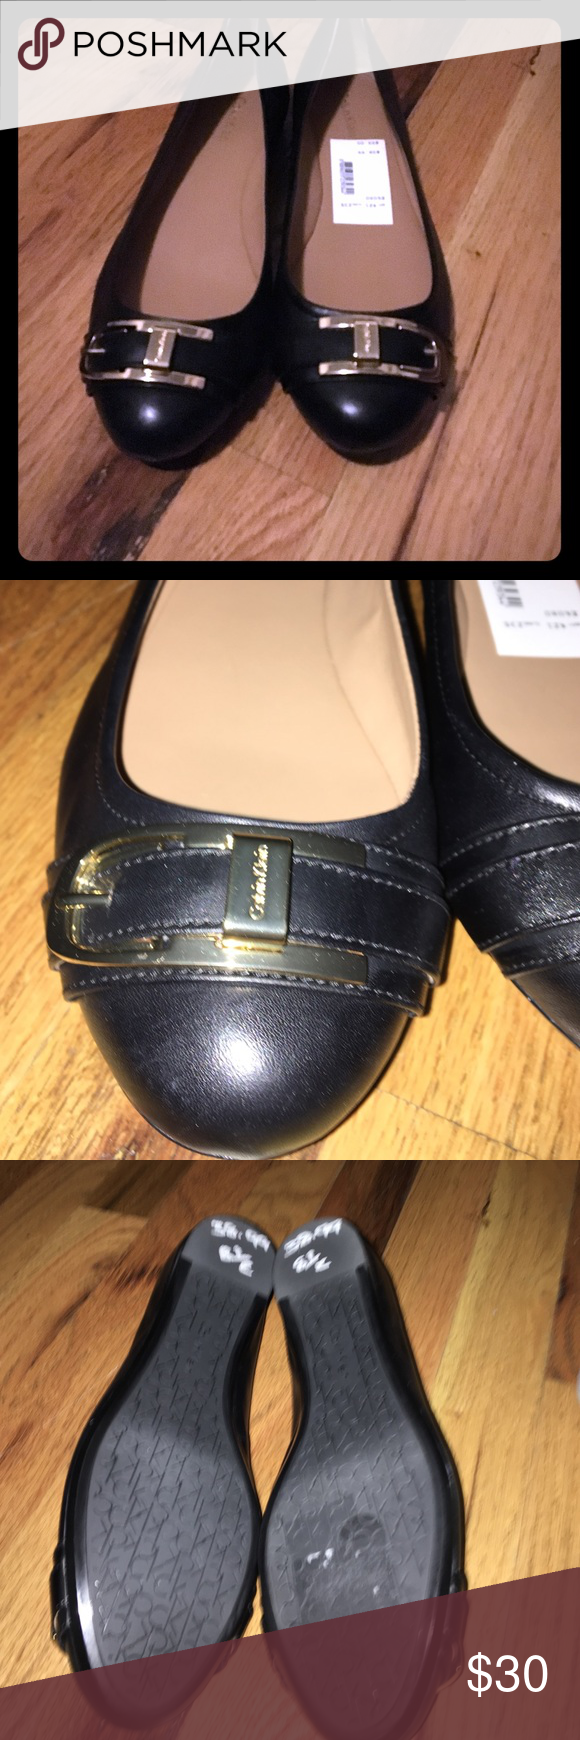 NWT Calvin Klein Flats NWT black with gold buckle Calvin Klein flats, I do not have the box, but tags are on shoes.Sz 8.5 Calvin Klein Shoes Flats & Loafers